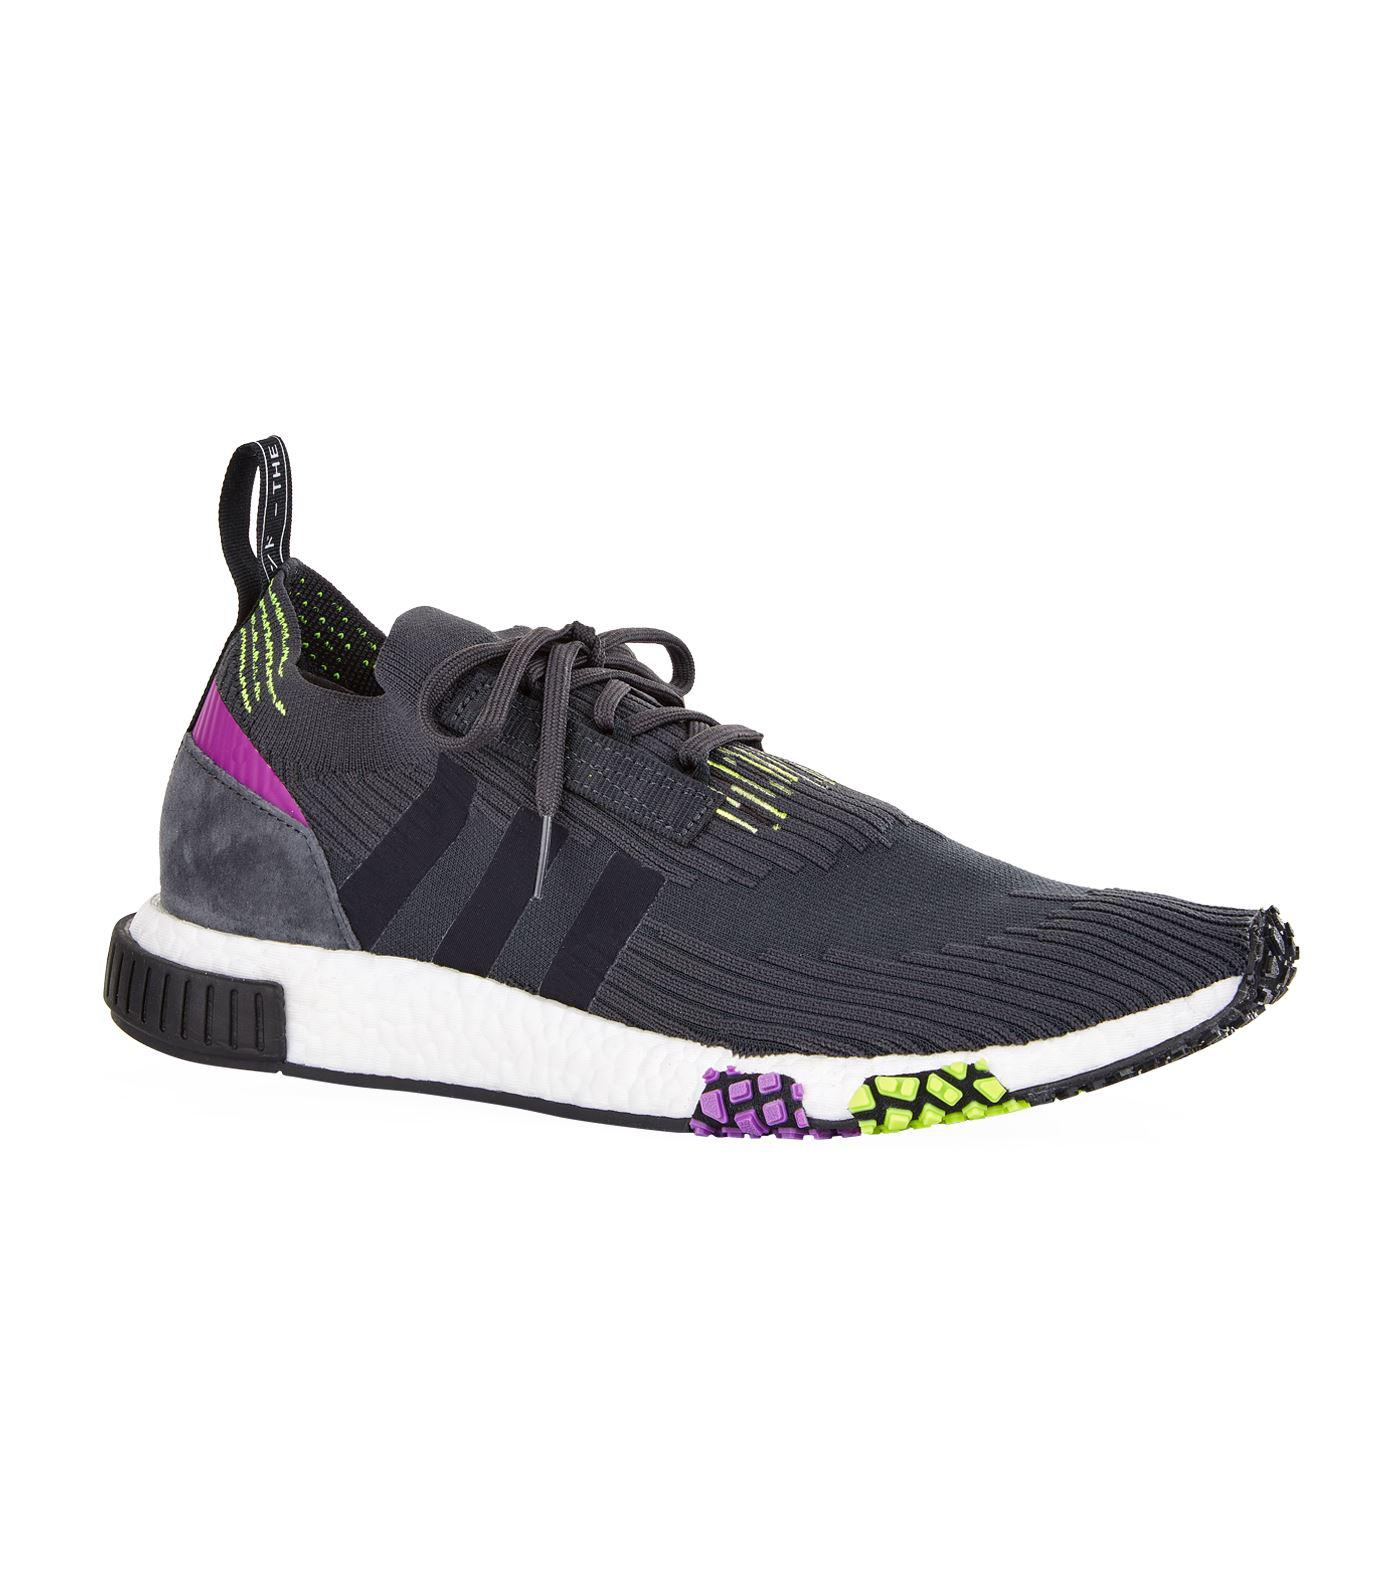 Adidas Originals Nmd Racer Primeknit Trainers in Gray for Men - Lyst 1a599e857